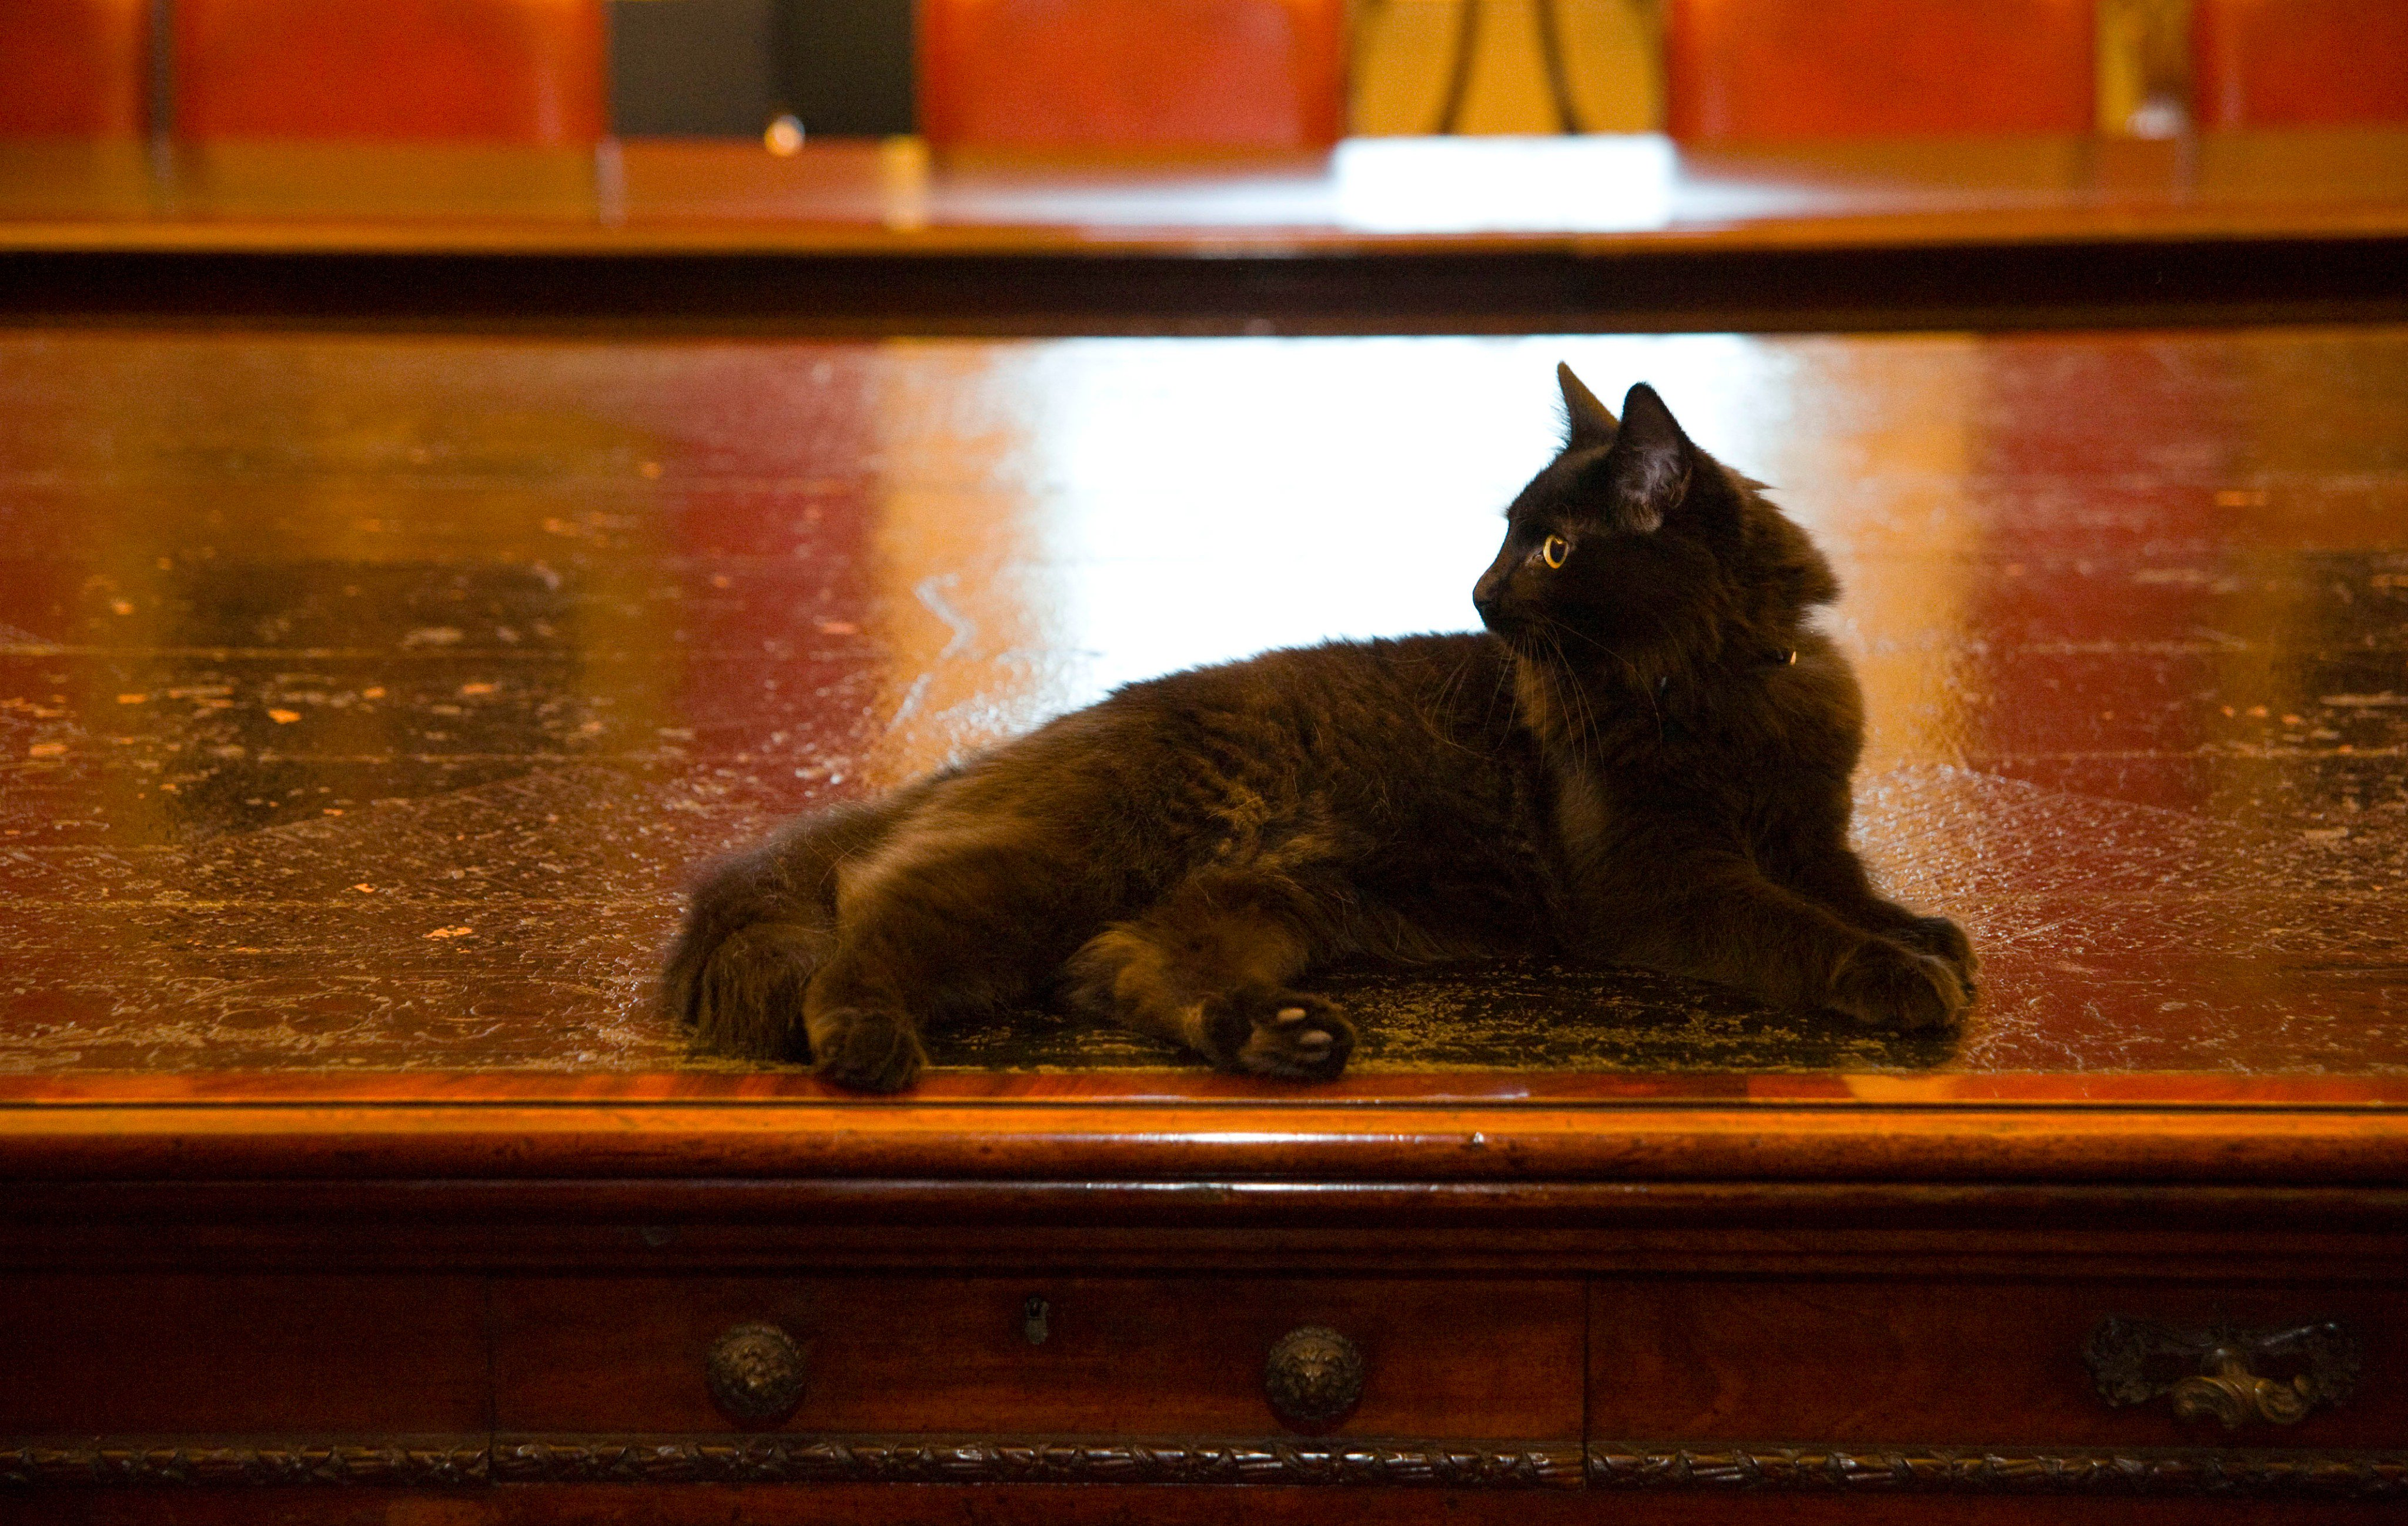 A black cat lounging across a large wooden table.